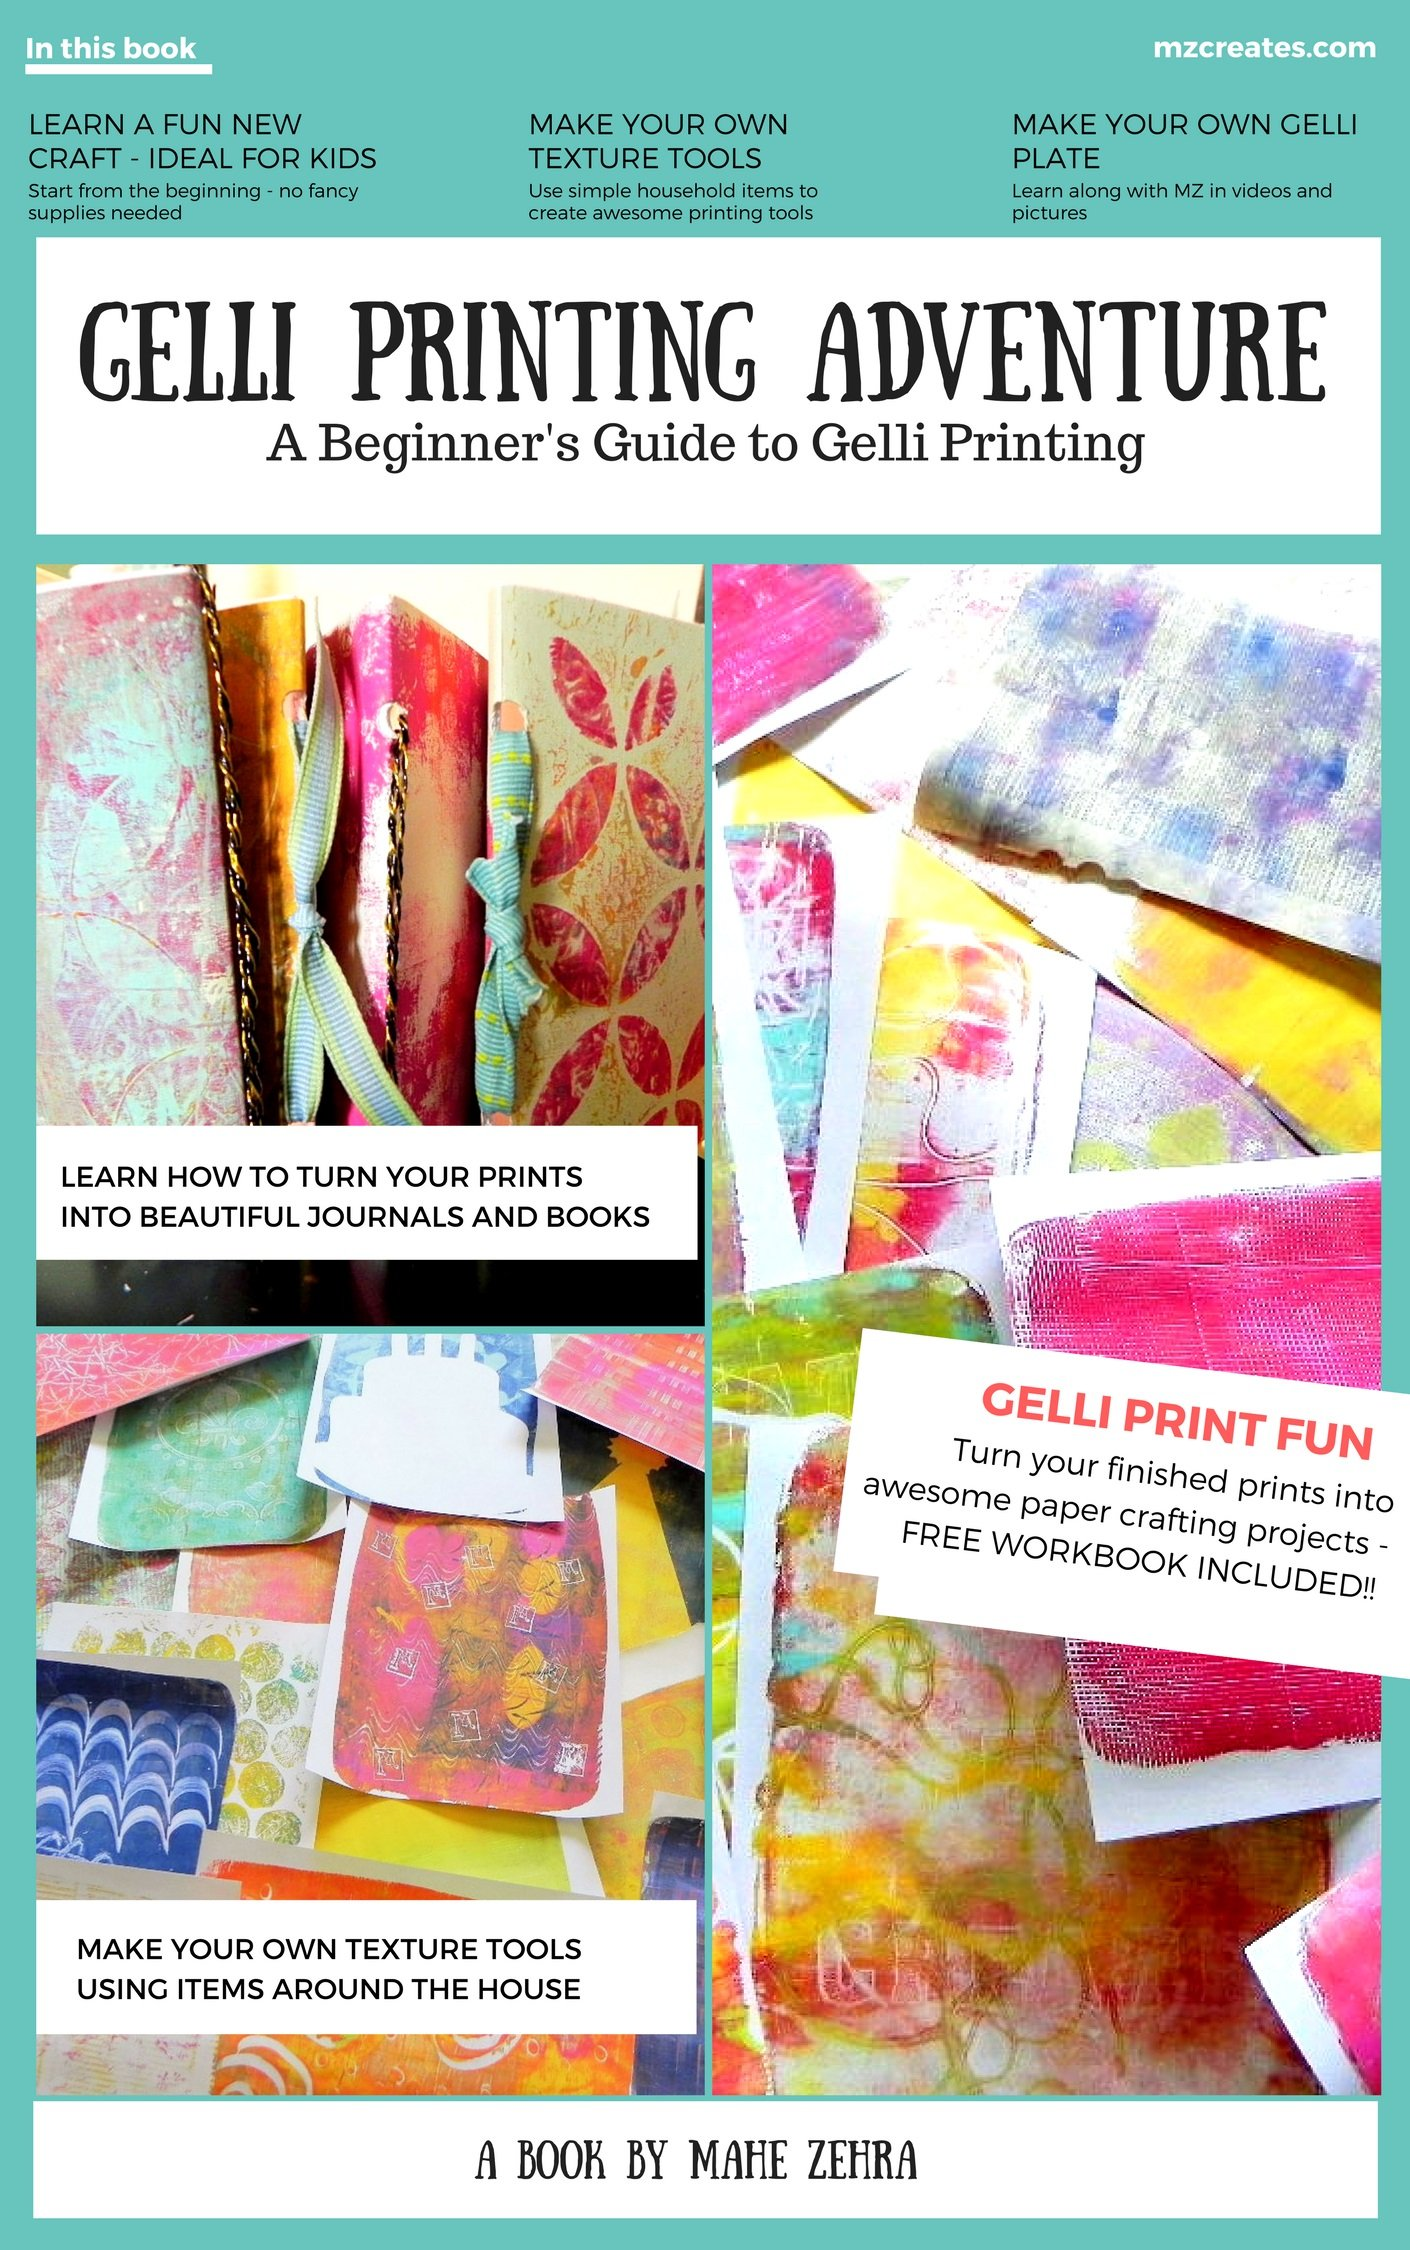 A Gelli Printing Adventure: A Beginners Guide to Printmaking. Make your own Gelli Plate, Texture Tools, Prints and Projects por Mahe Zehra Husain